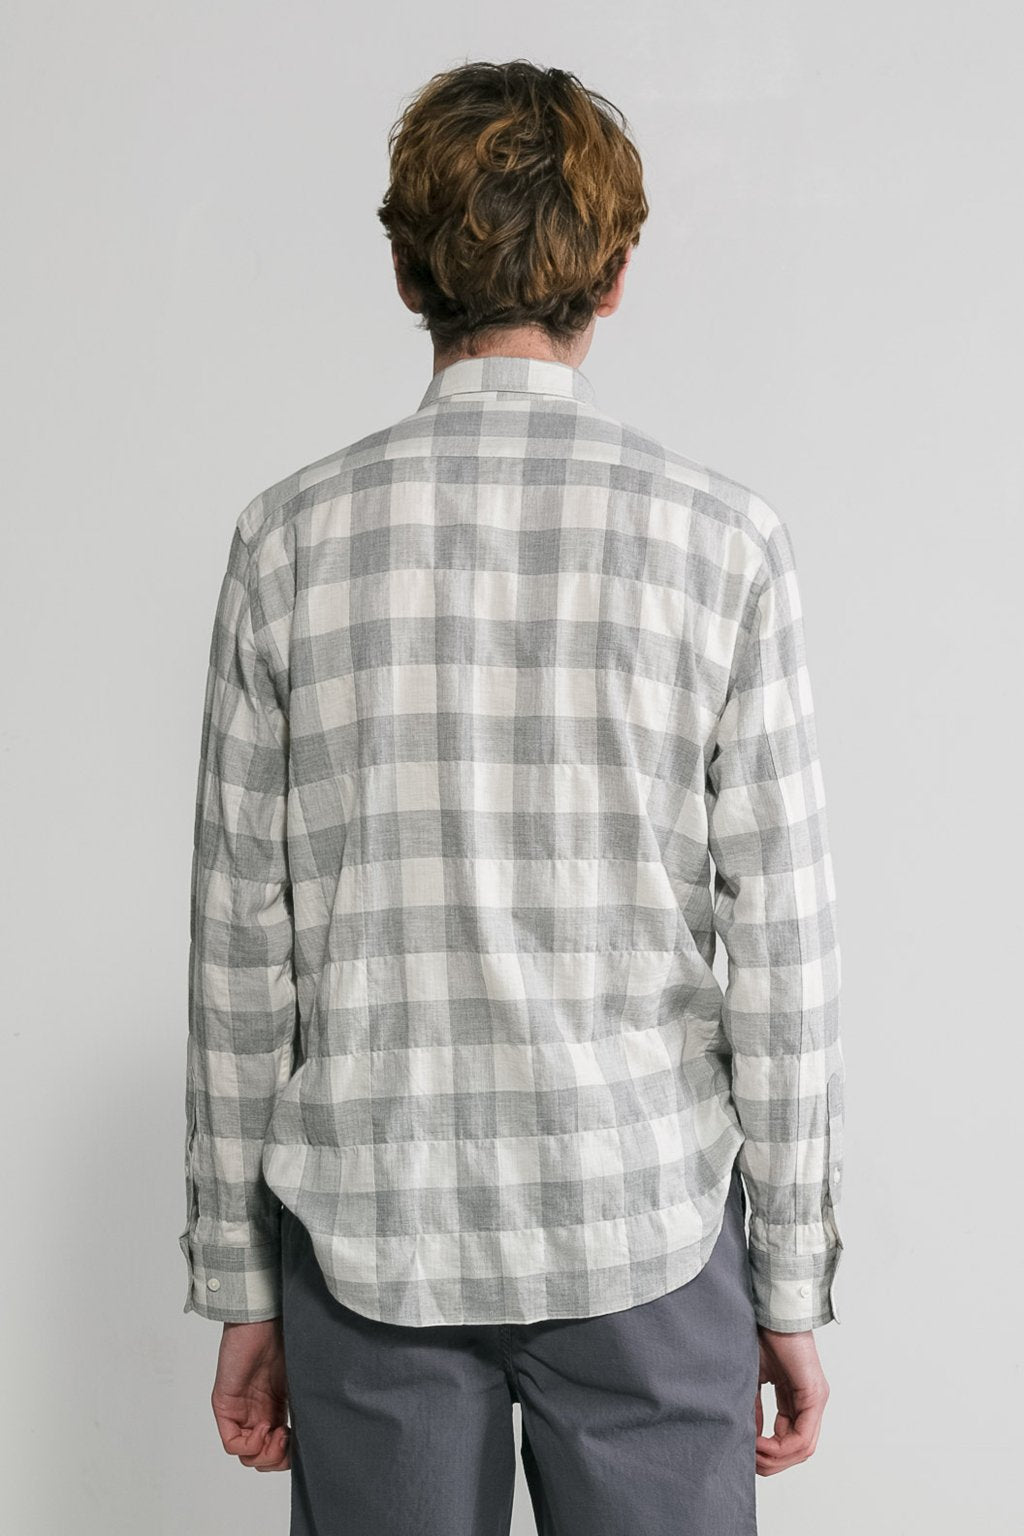 L/S Japanese Herringbone Gingham